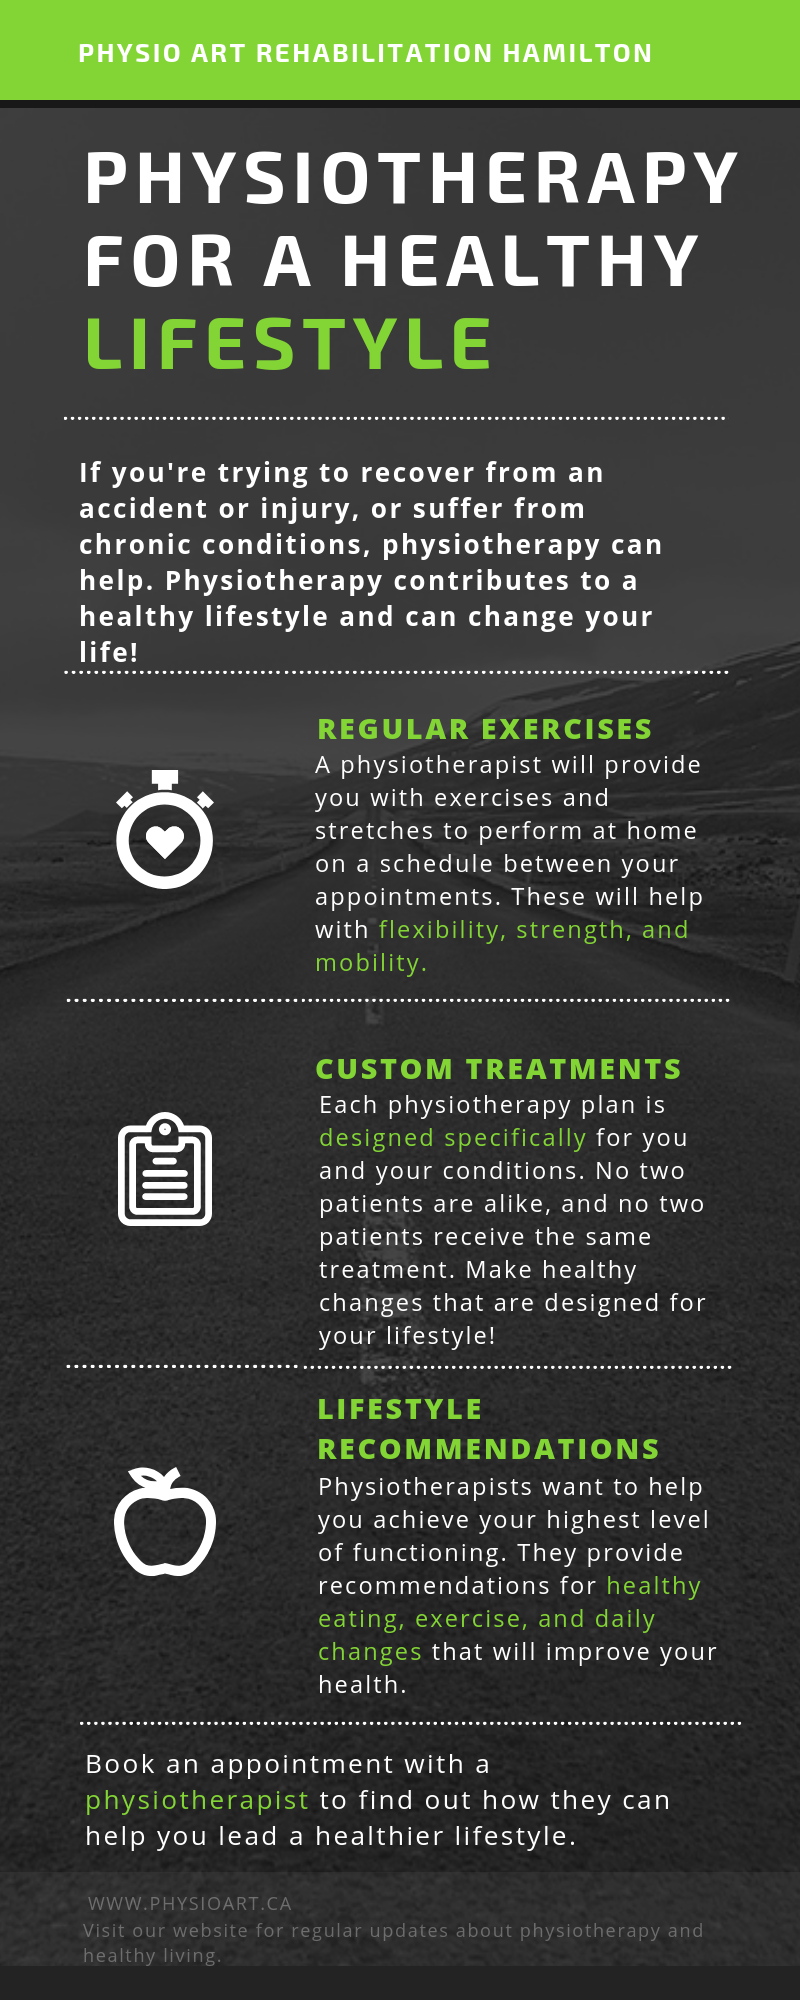 Physiotherapy for a healthy lifestyle